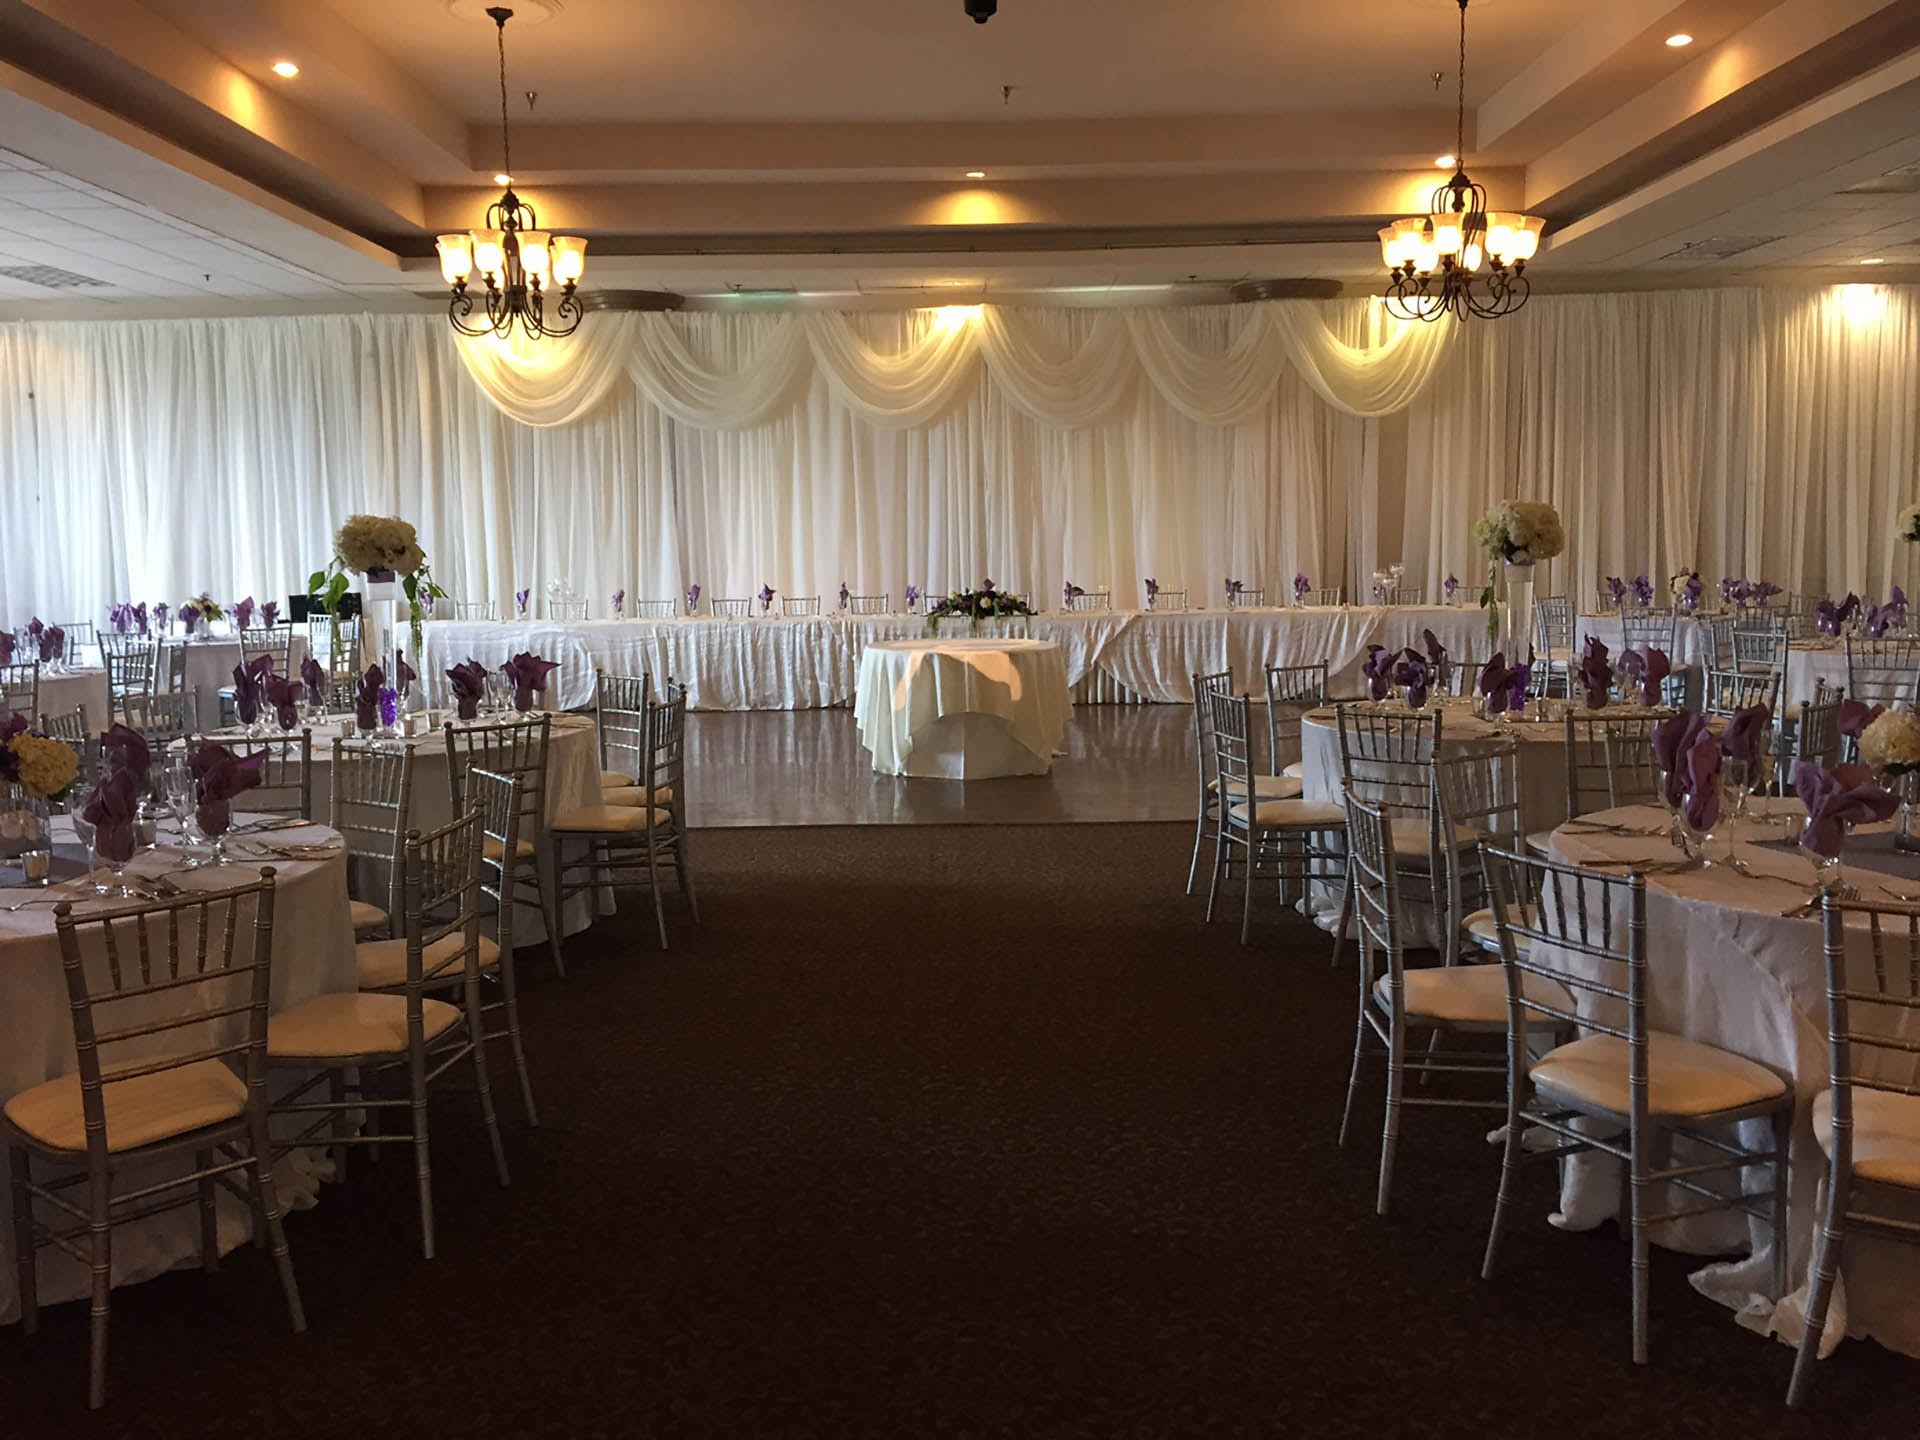 Our spacious ballroom has neutral decor, perfect for any style or theme